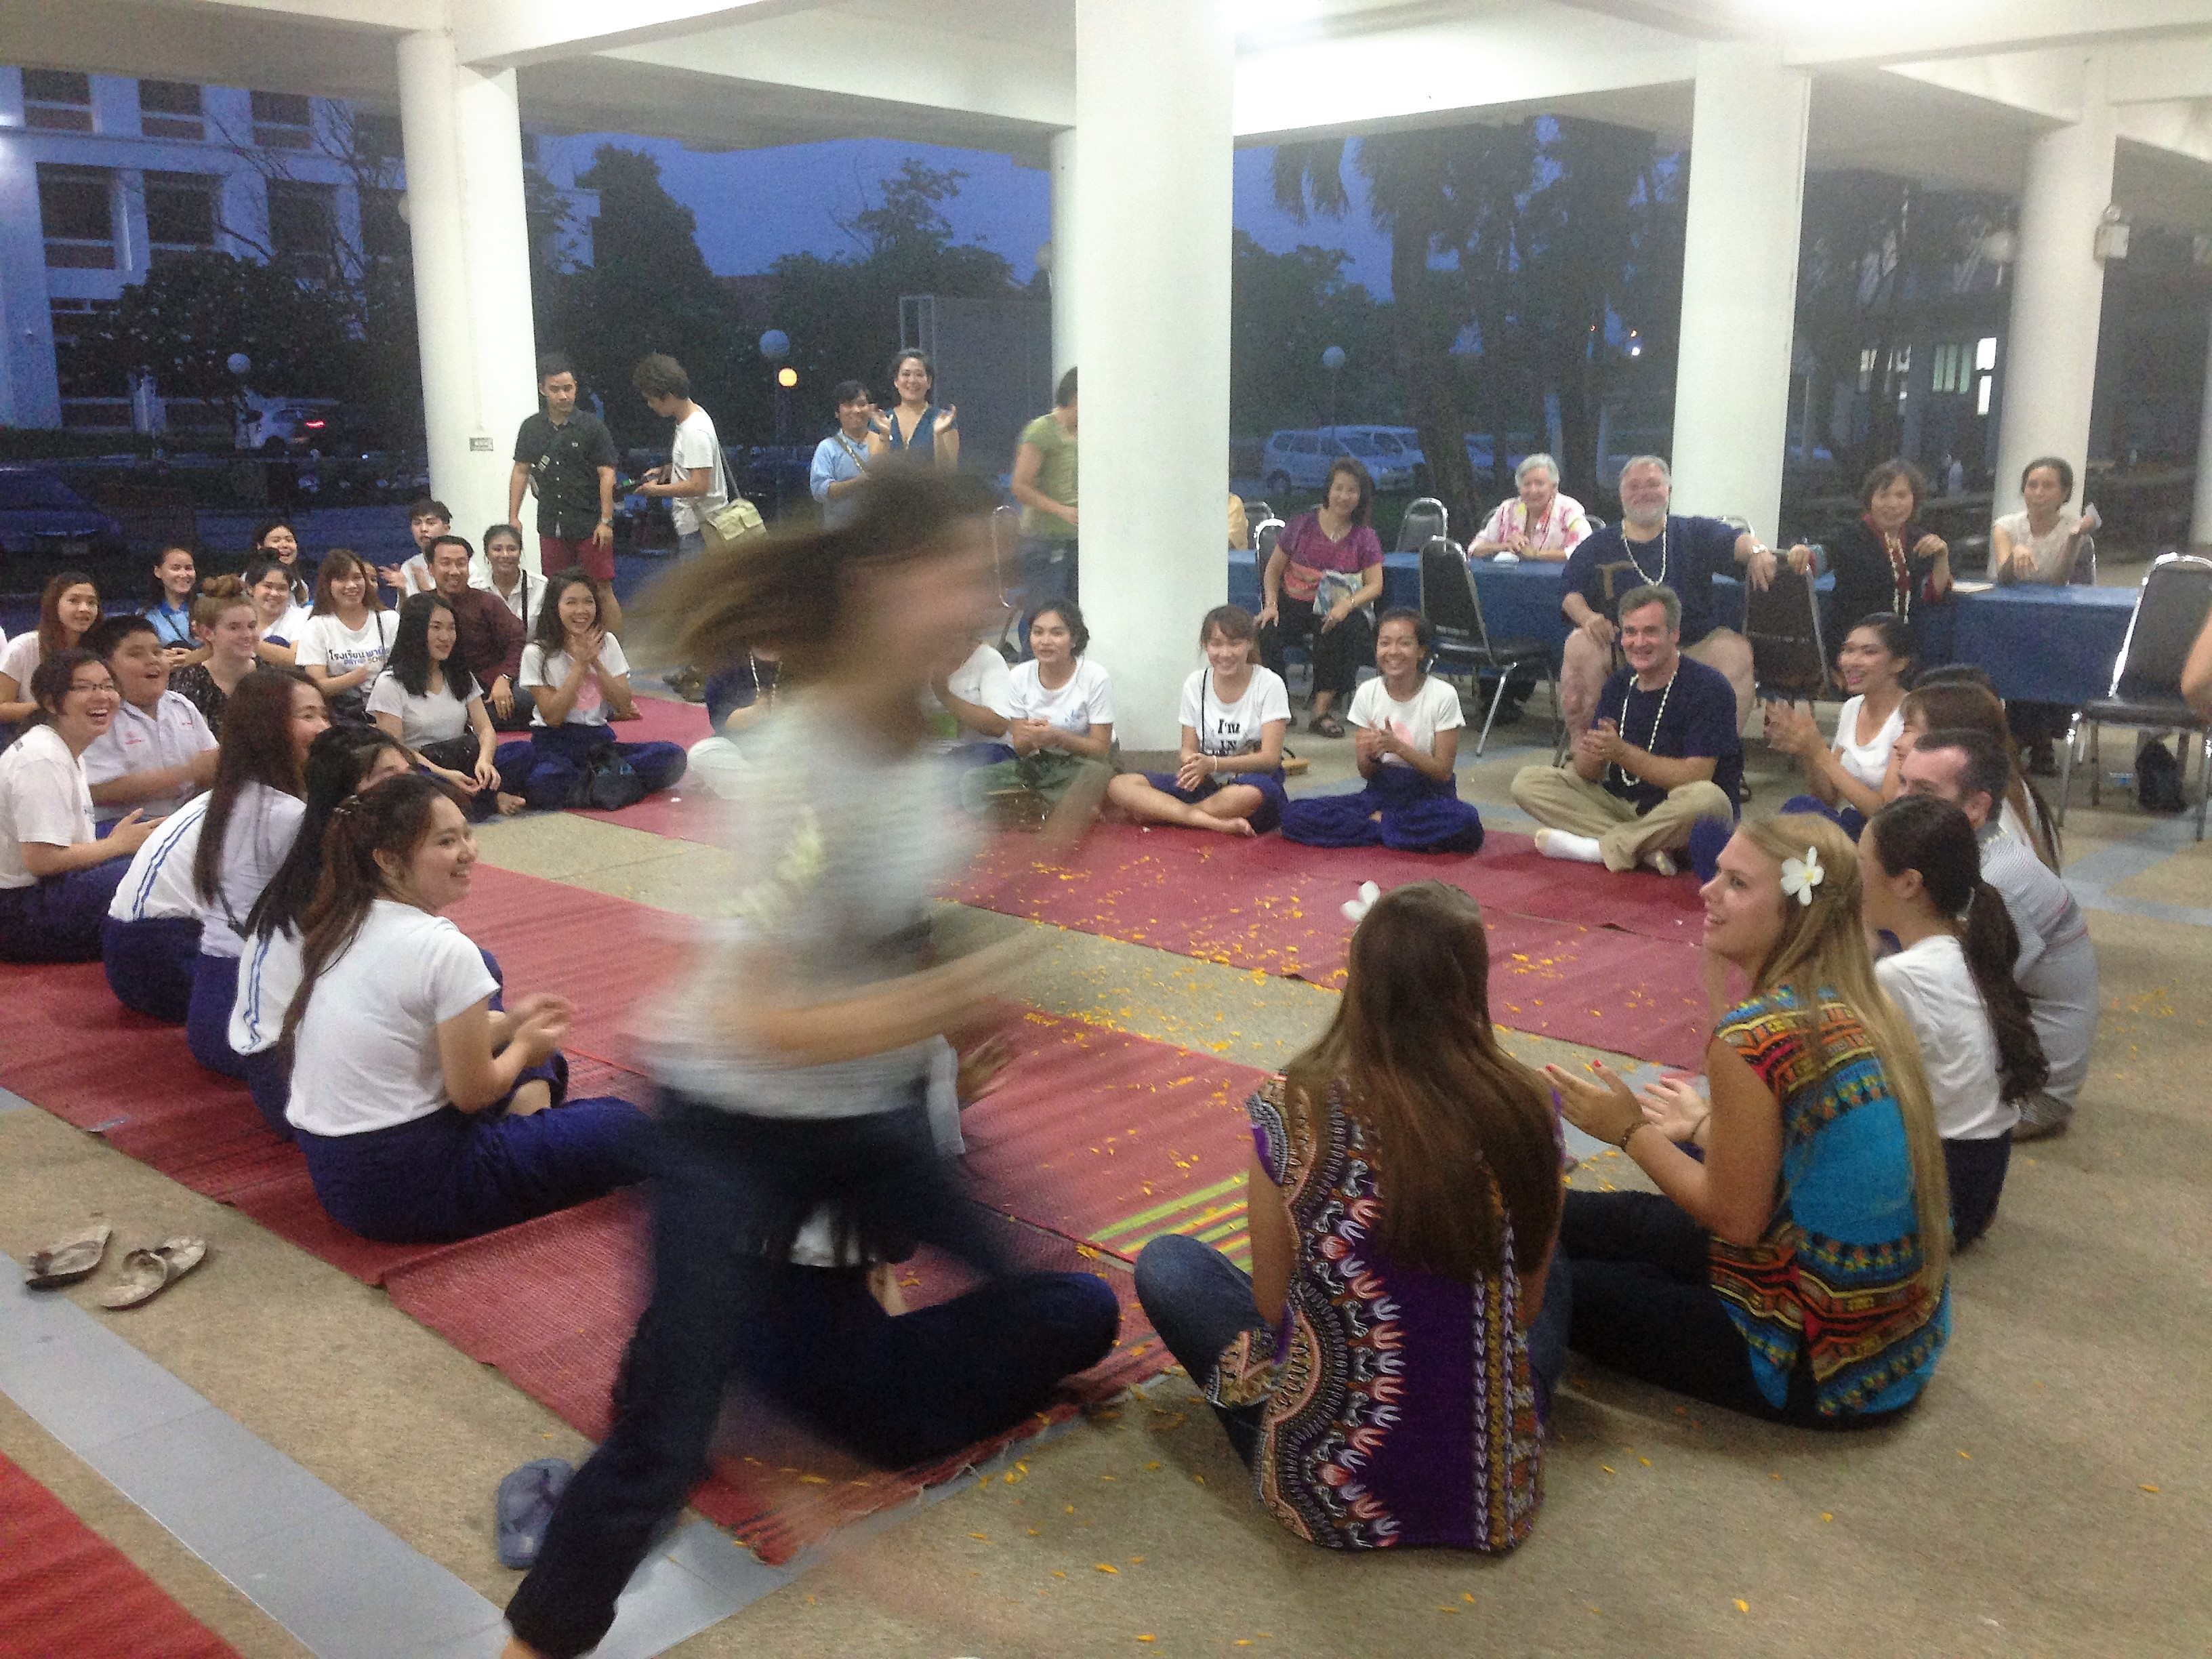 Duck Duck Goose Thai style – we know how to play in Thailand